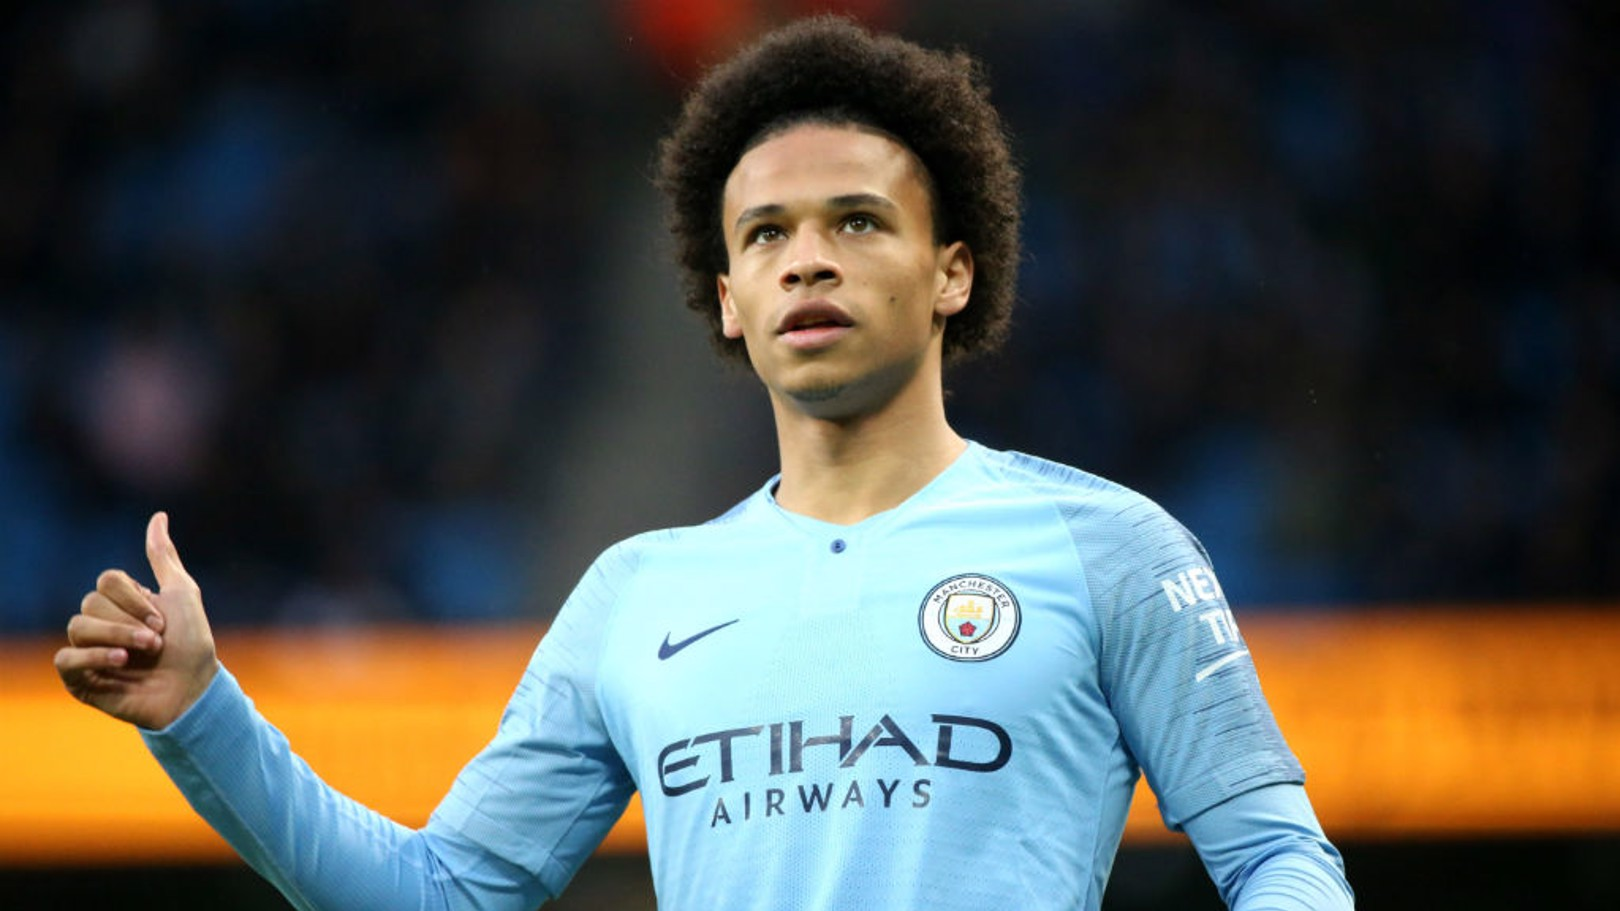 ​THUMBS UP: Our new 2018/19 home kit gets the seal of approval from Leroy Sane.